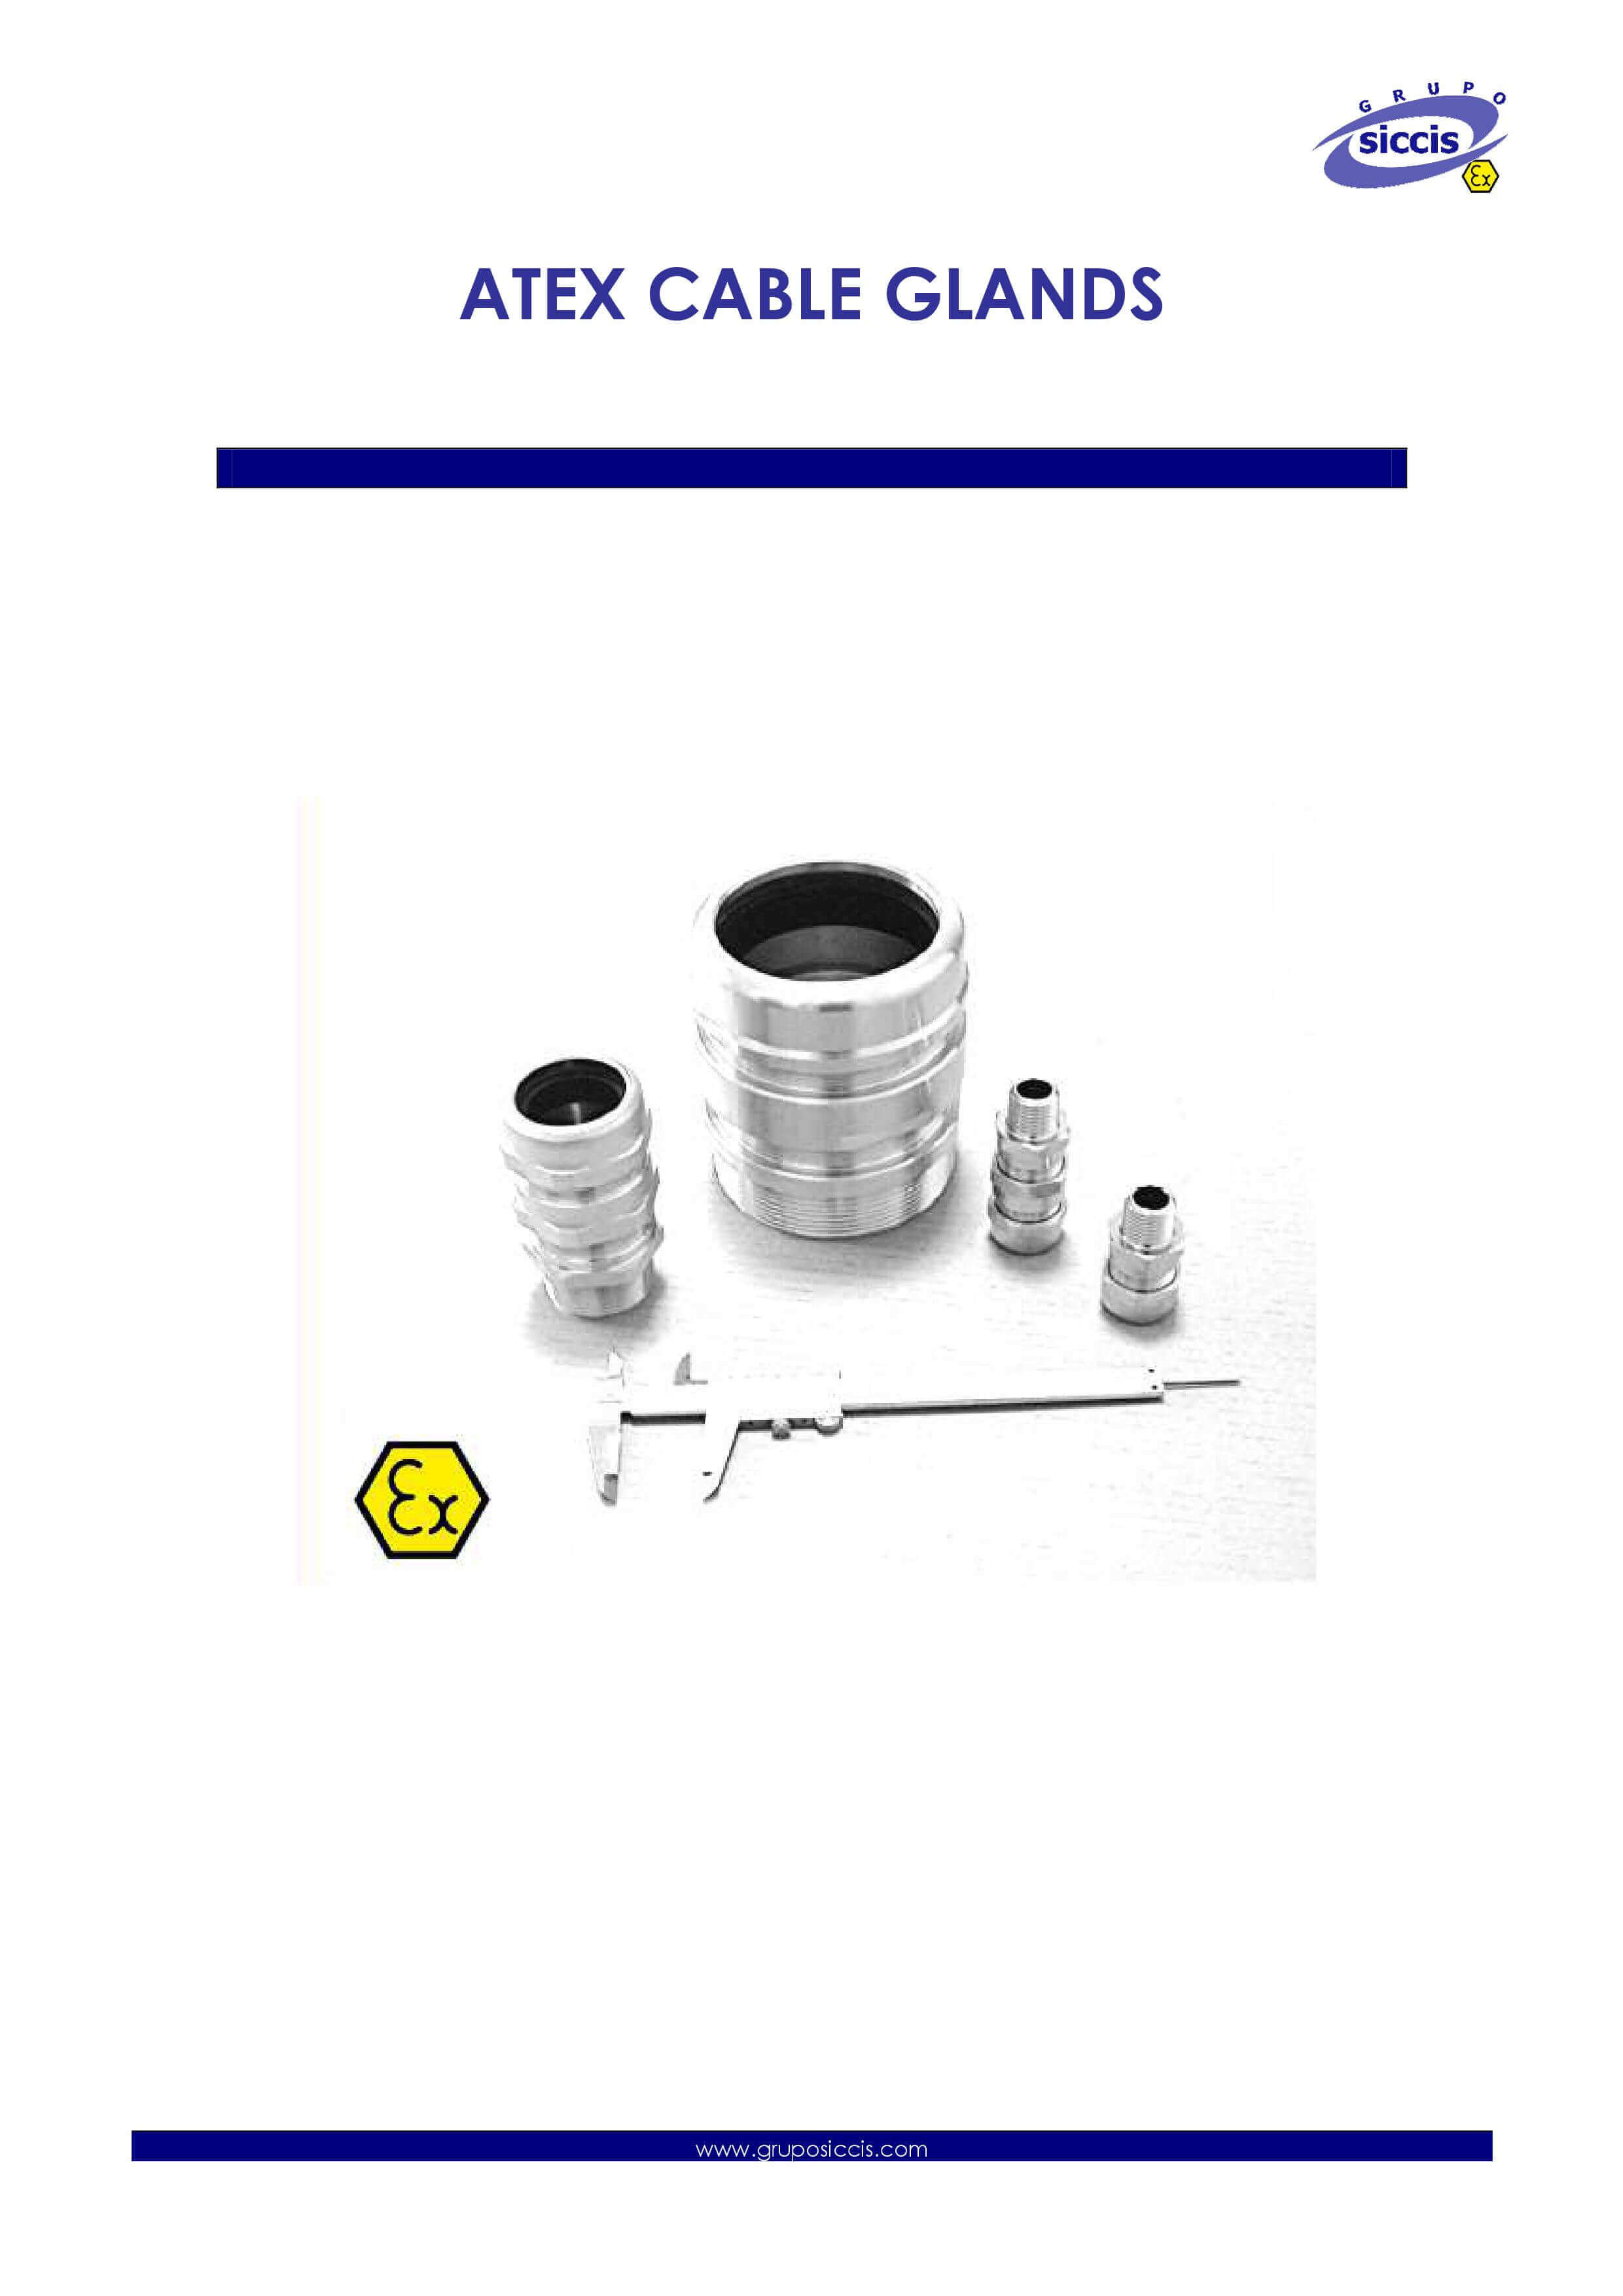 Atex Cable Glands Catalog